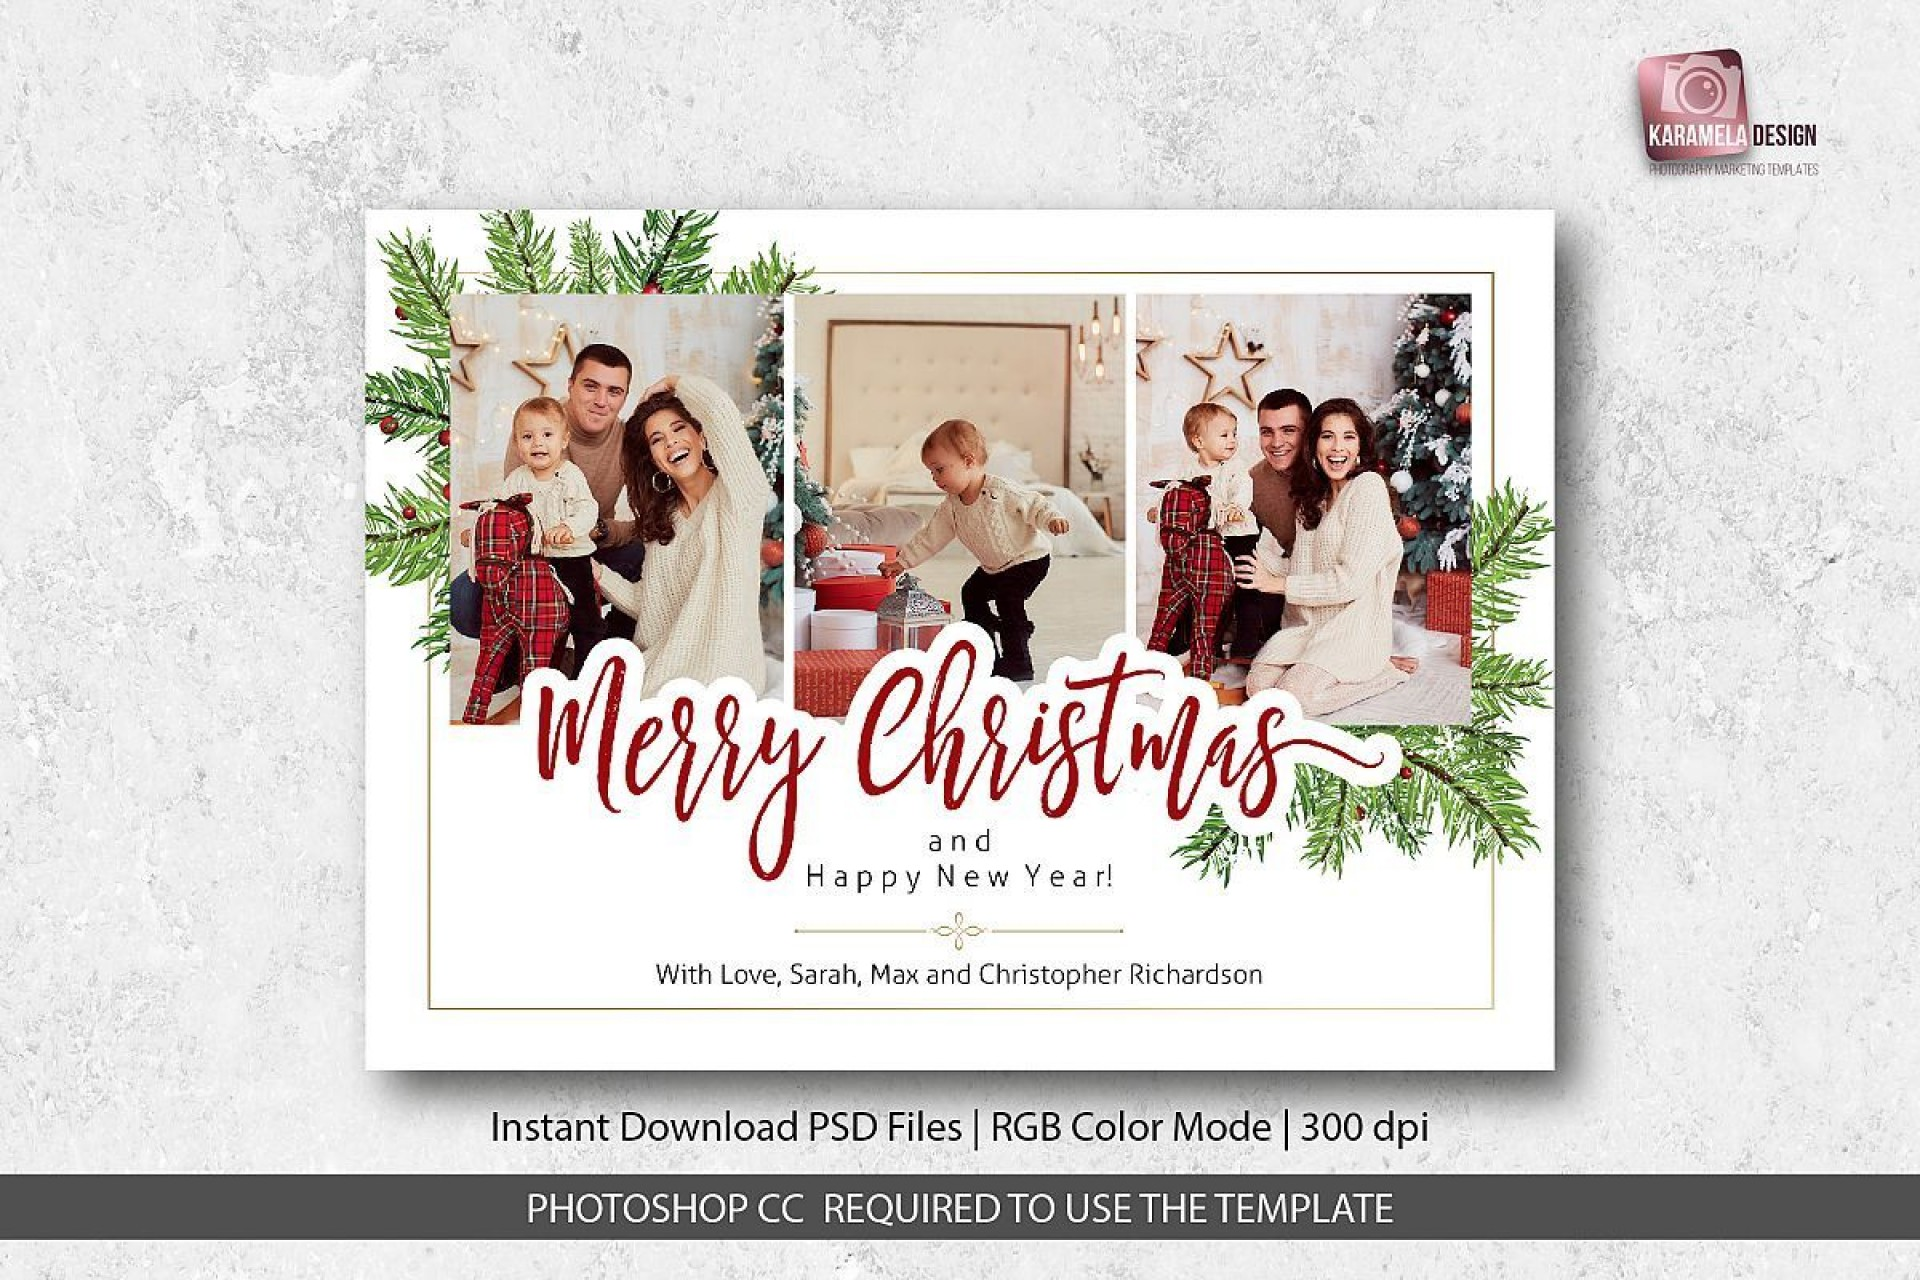 002 Unforgettable Christma Card Template Photoshop High Definition  Free Download Funny1920